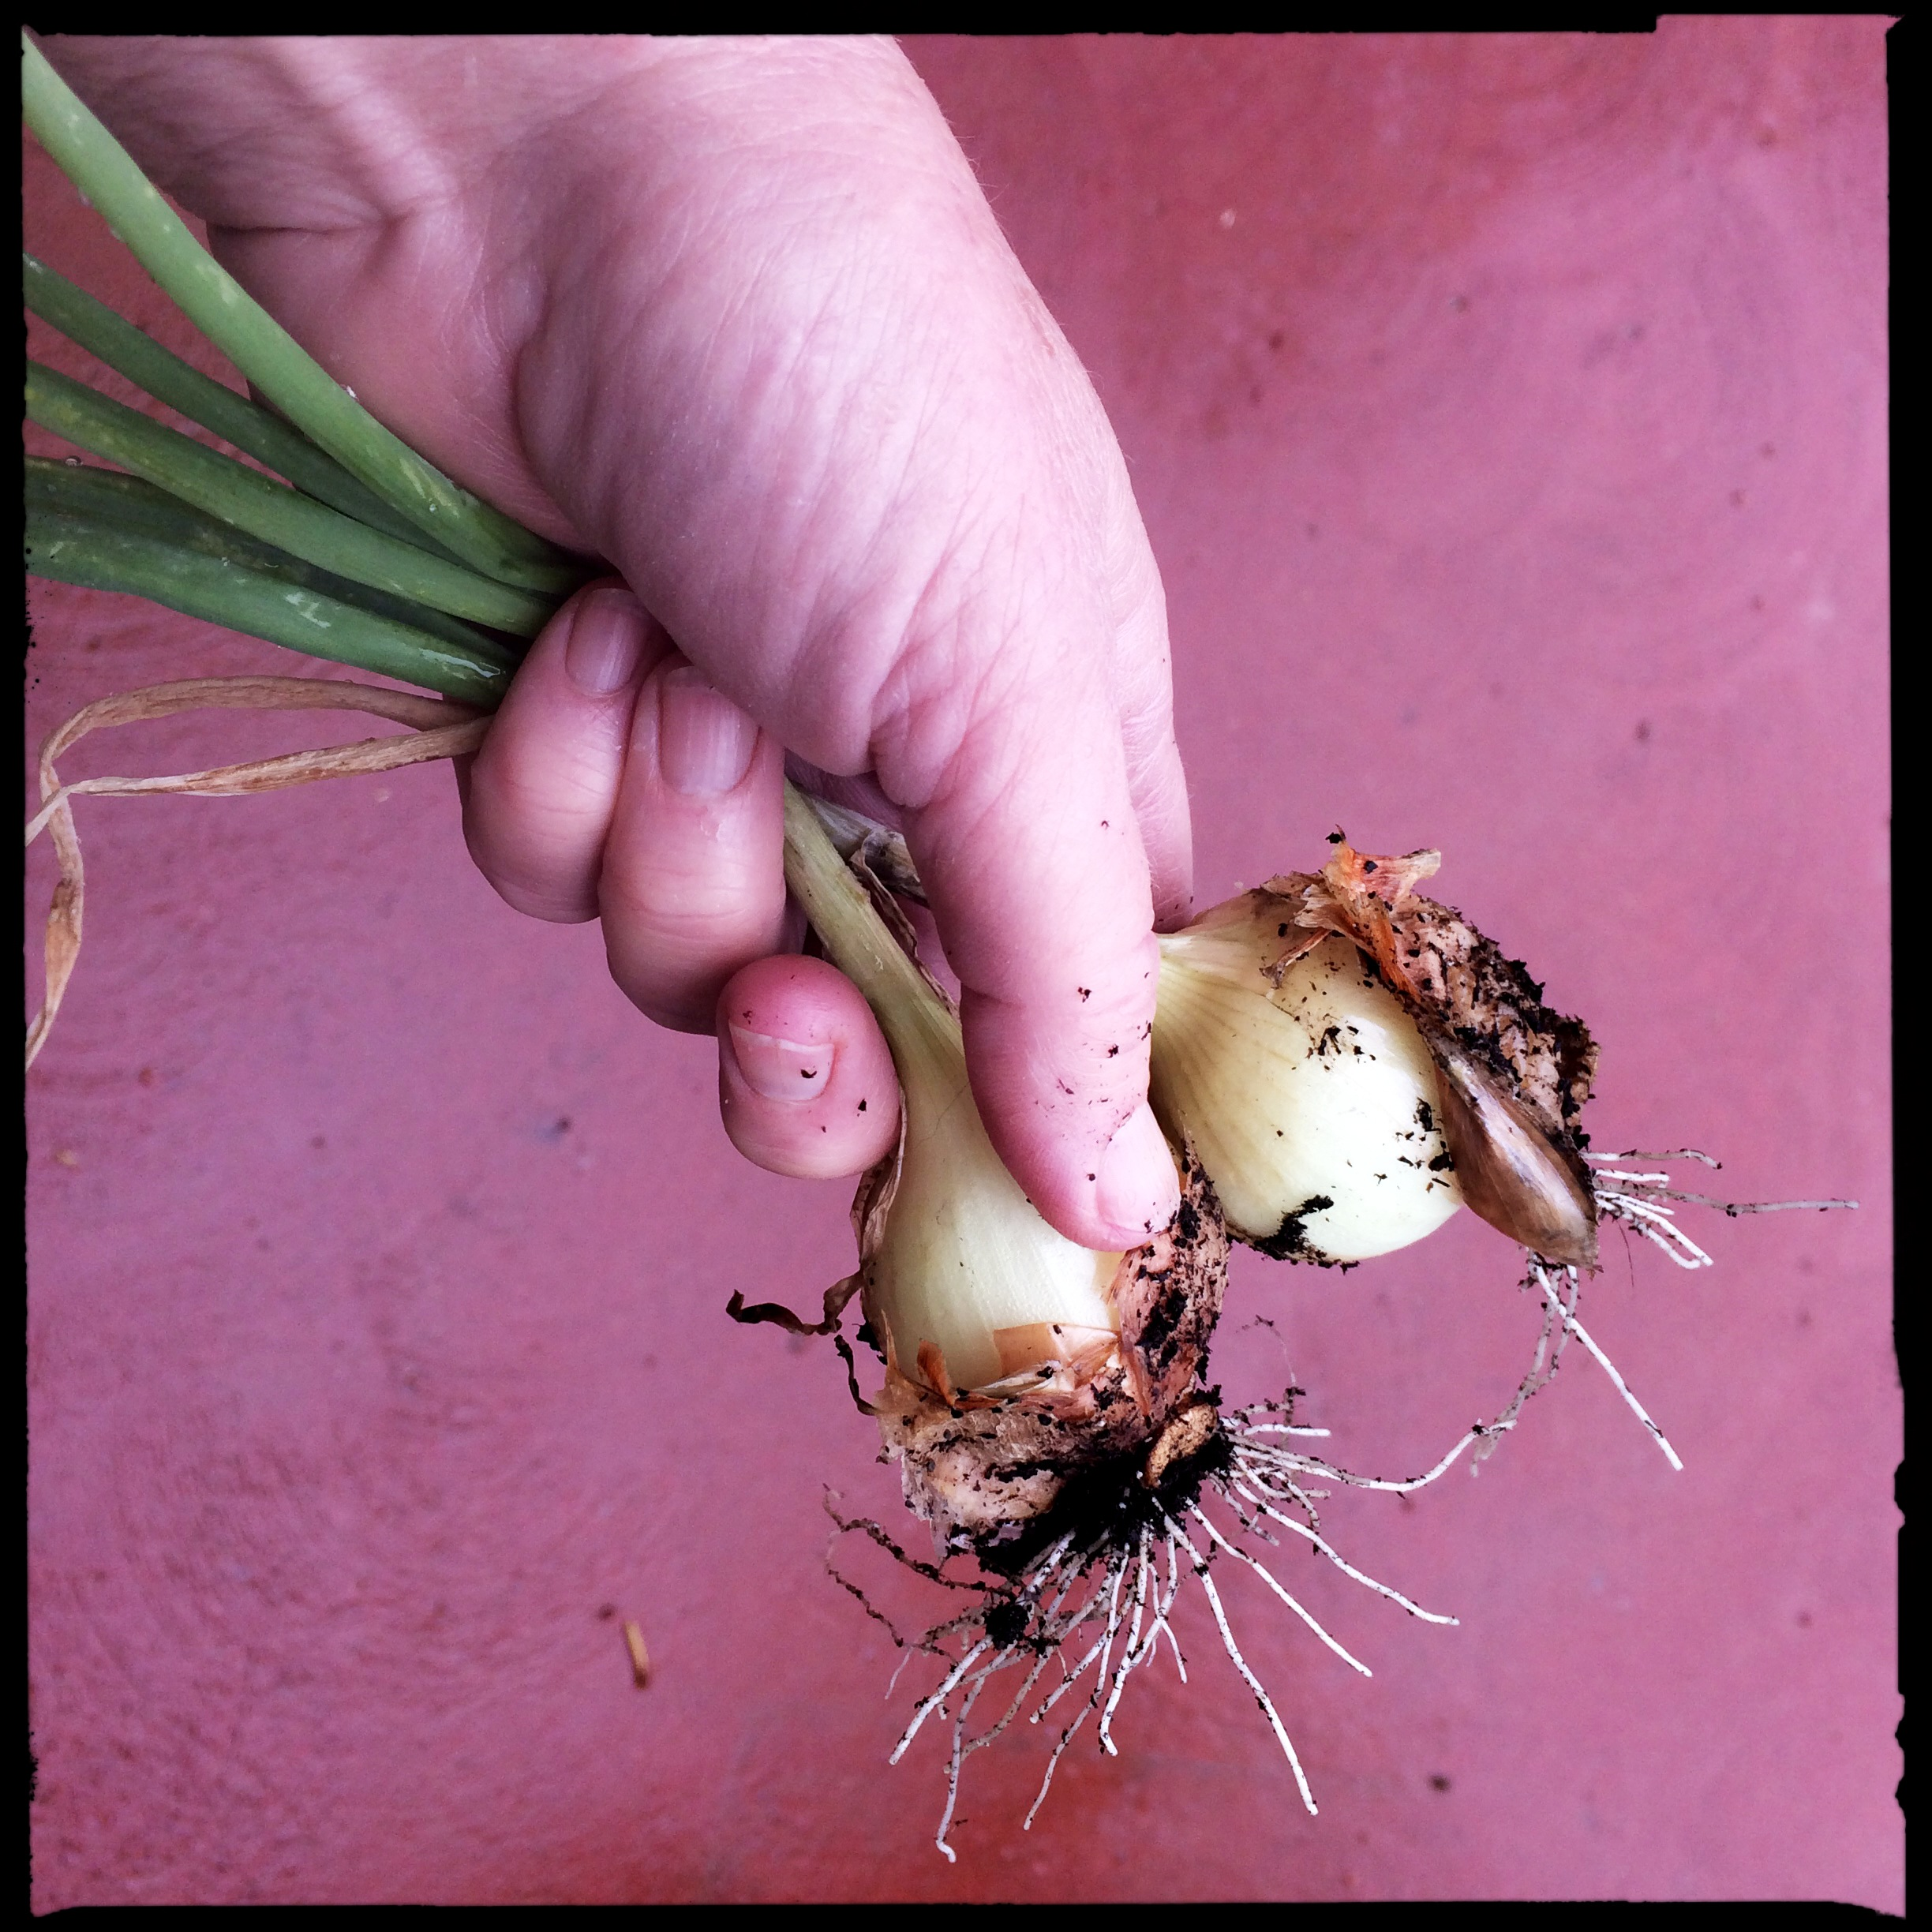 Last summer my friend David stuck a couple of surprises in one of my garden beds, and a few weeks ago I pulled two sweet little Vidalia onions. When I called to thank him, he offered to send me a bunch of starts. He just finished planting 1950 of them in his central Florida garden, where they'll grow long and well until they're four or five inches fat. There's no chance of that here! In fact, it's almost certain they won't survive the winter. But the slim chance of success is worth the gamble.